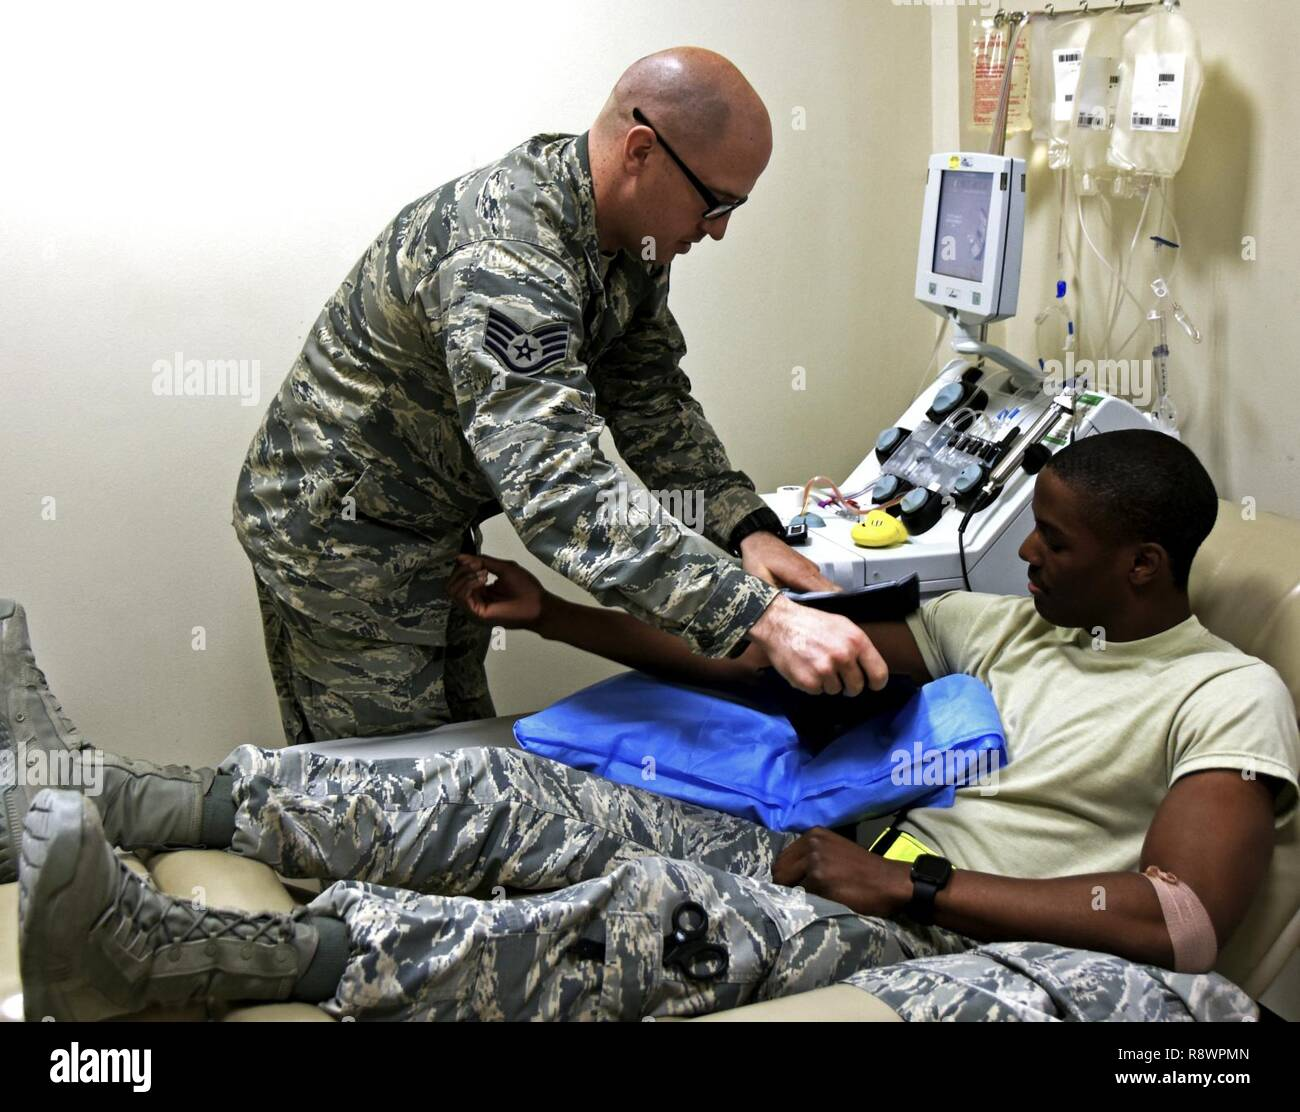 Staff Sgt. Jonathan Flannigan, NCO in charge of the apheresis element with the 379th Expeditionary Medical Group, wraps a pressure cuff around the arm of Senior Airman Jordan Marshall, an aerospace medical technician with the 379th EMDG, at Al Udeid Air Base, Qatar, March 7, 2017. Marshall volunteered to donate blood platelets which are essential to Airmen in combat zones without access to immediate medical treatment. - Stock Image